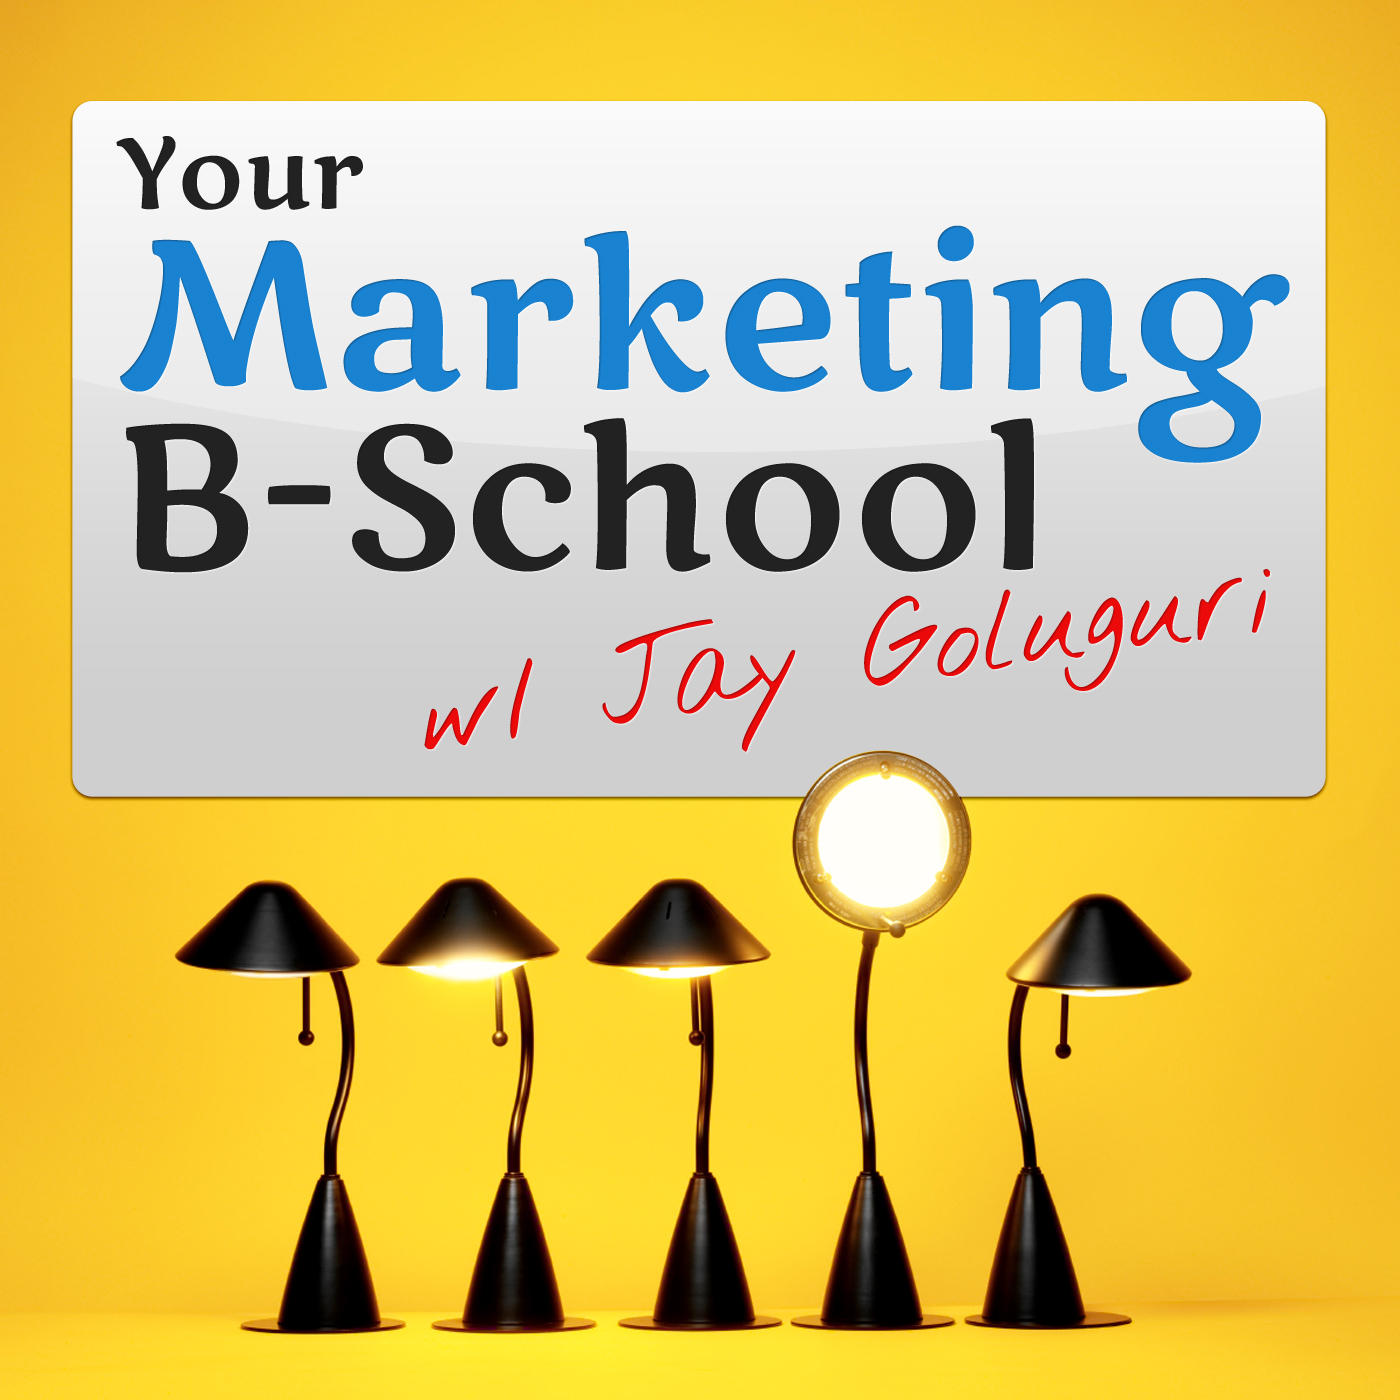 Your Marketing B-School with Jay Goluguri